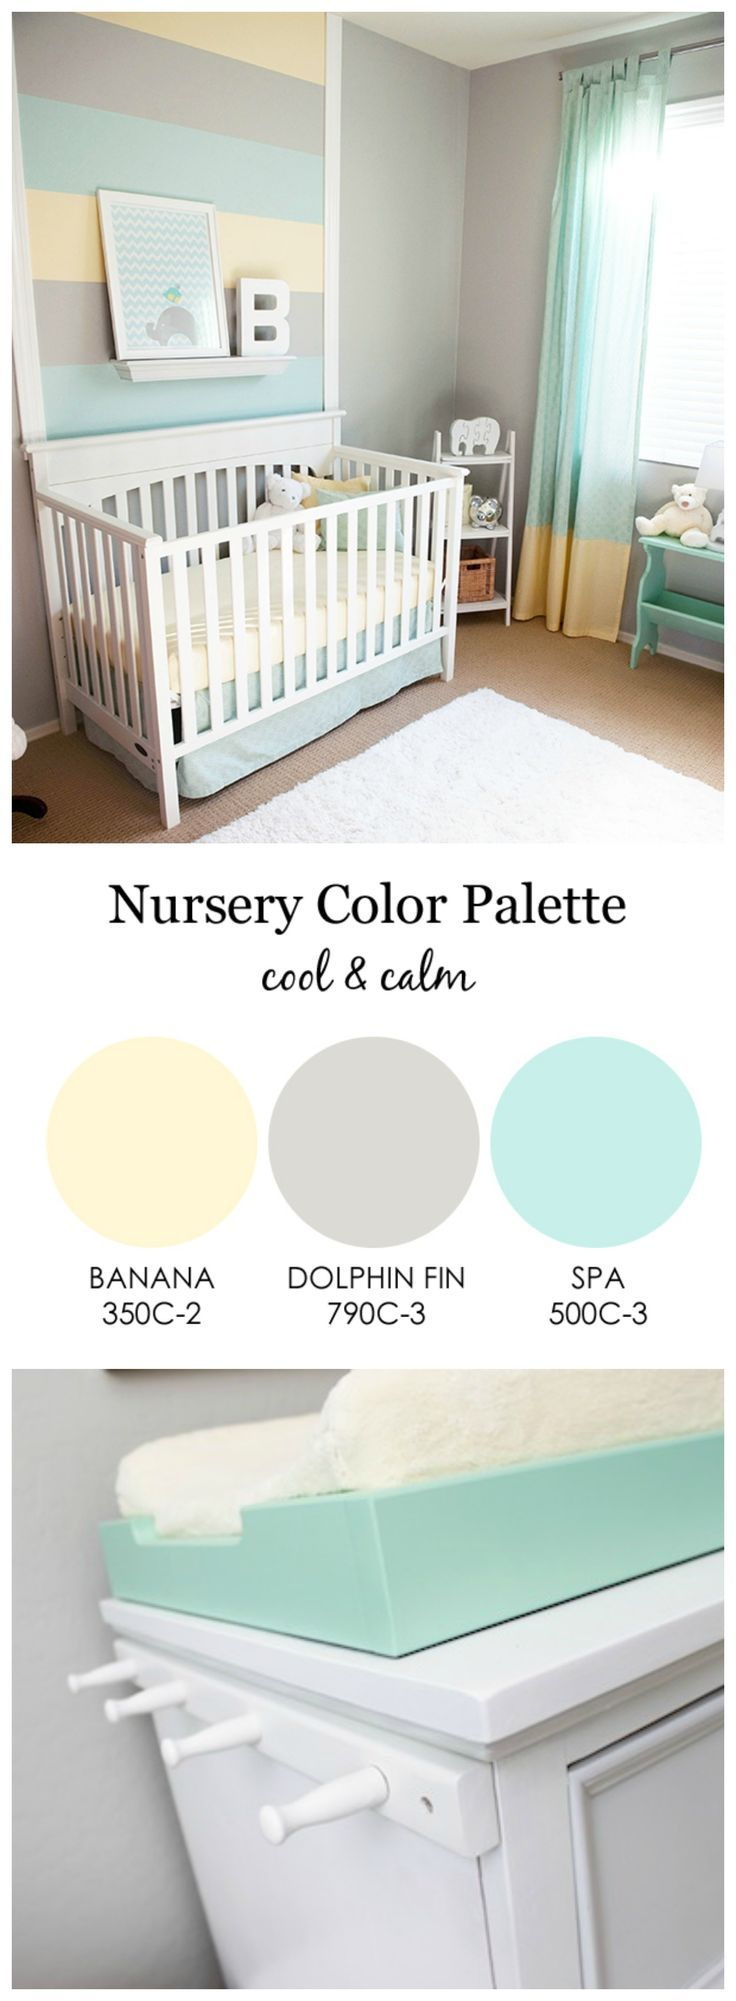 Cool and Calm, Gender Neutral Nursery - love the mint green, gray and light yellow color scheme! http://projectnursery.com/2014/07/cool-and-calm-nursery/